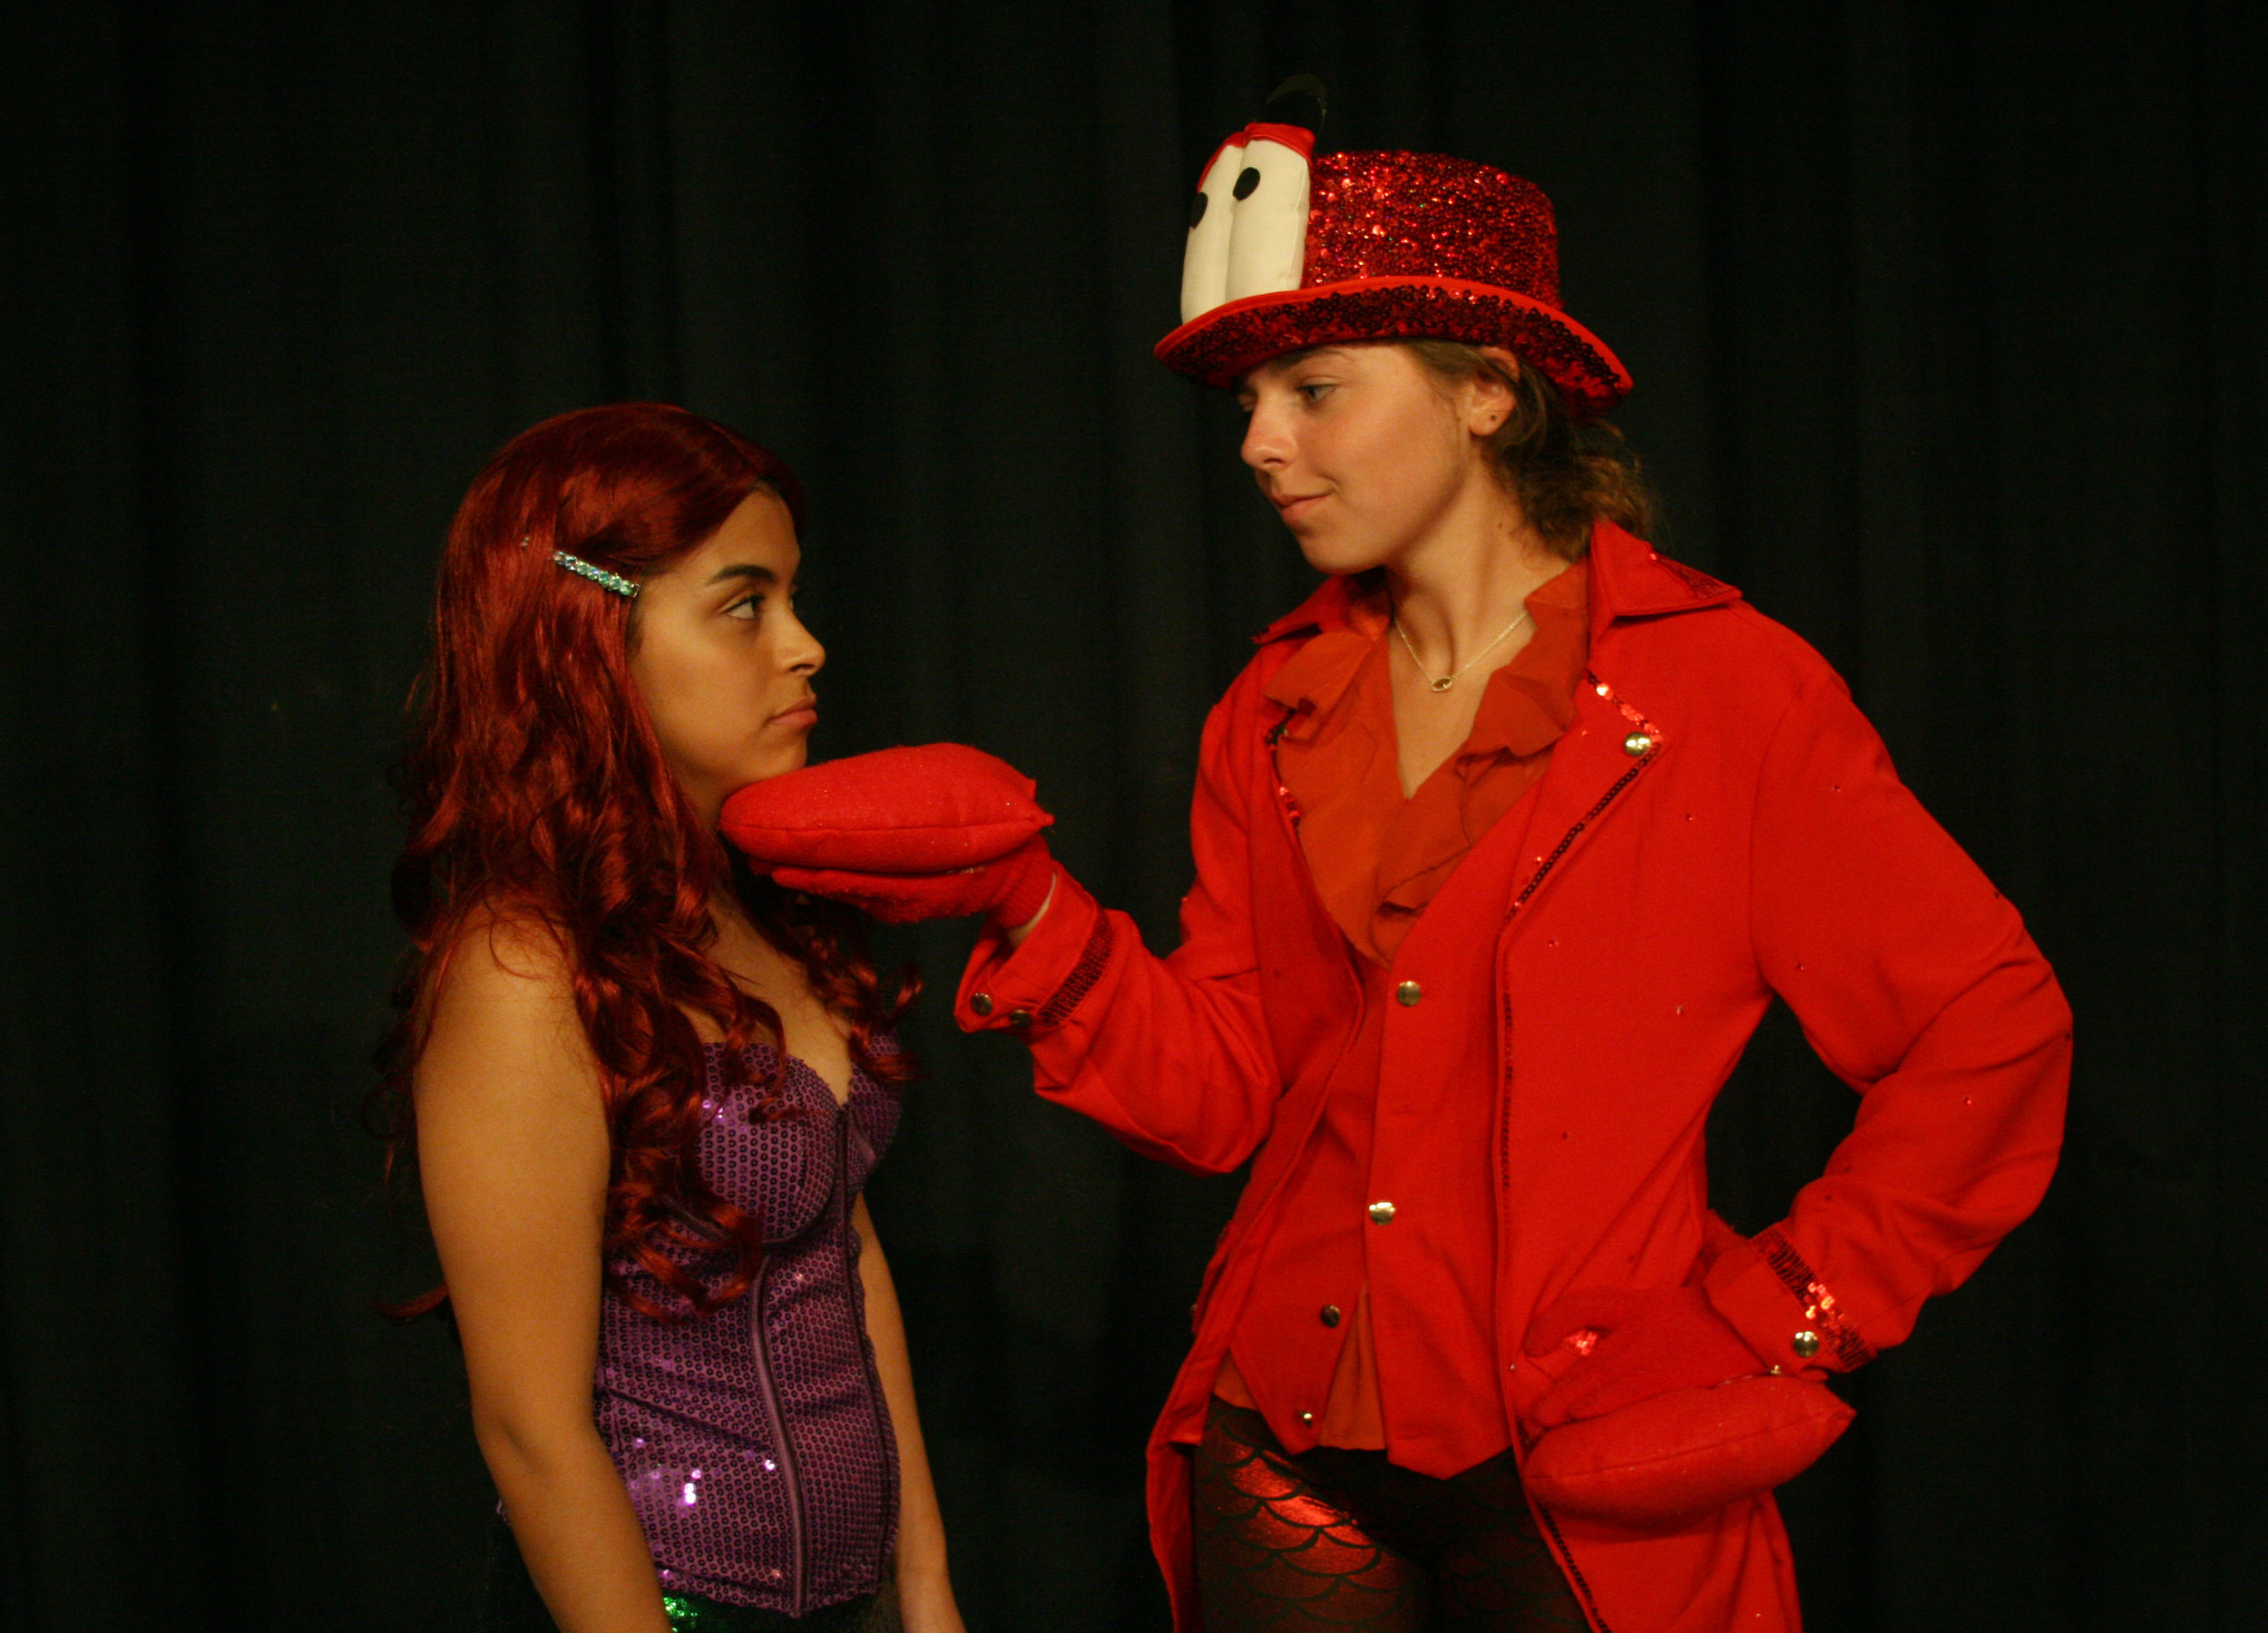 Sebastian the crab (Lindley Andrew) reminds Ariel (Jennifer Trejo Benitez) about her responsibilities to her father's undersea kingdom.